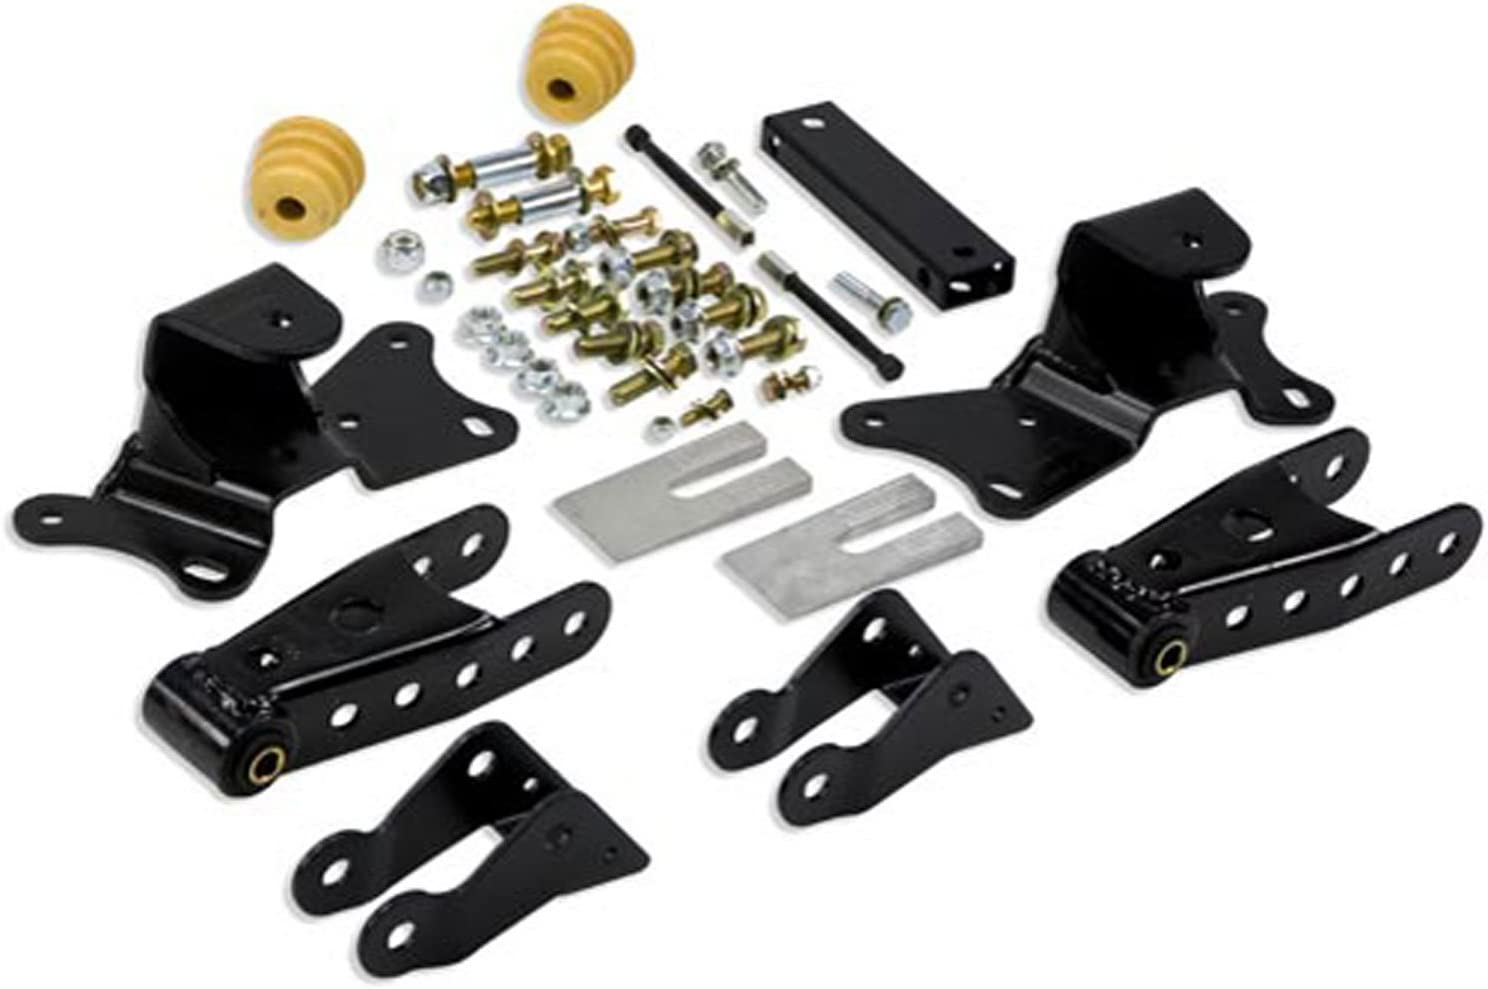 Liftgate Lift Supports 1987 To 1995 Nissan Pathfinder 2 Pieces SET 1986 To 1995 Datsun Pathfinder LiftNSupport